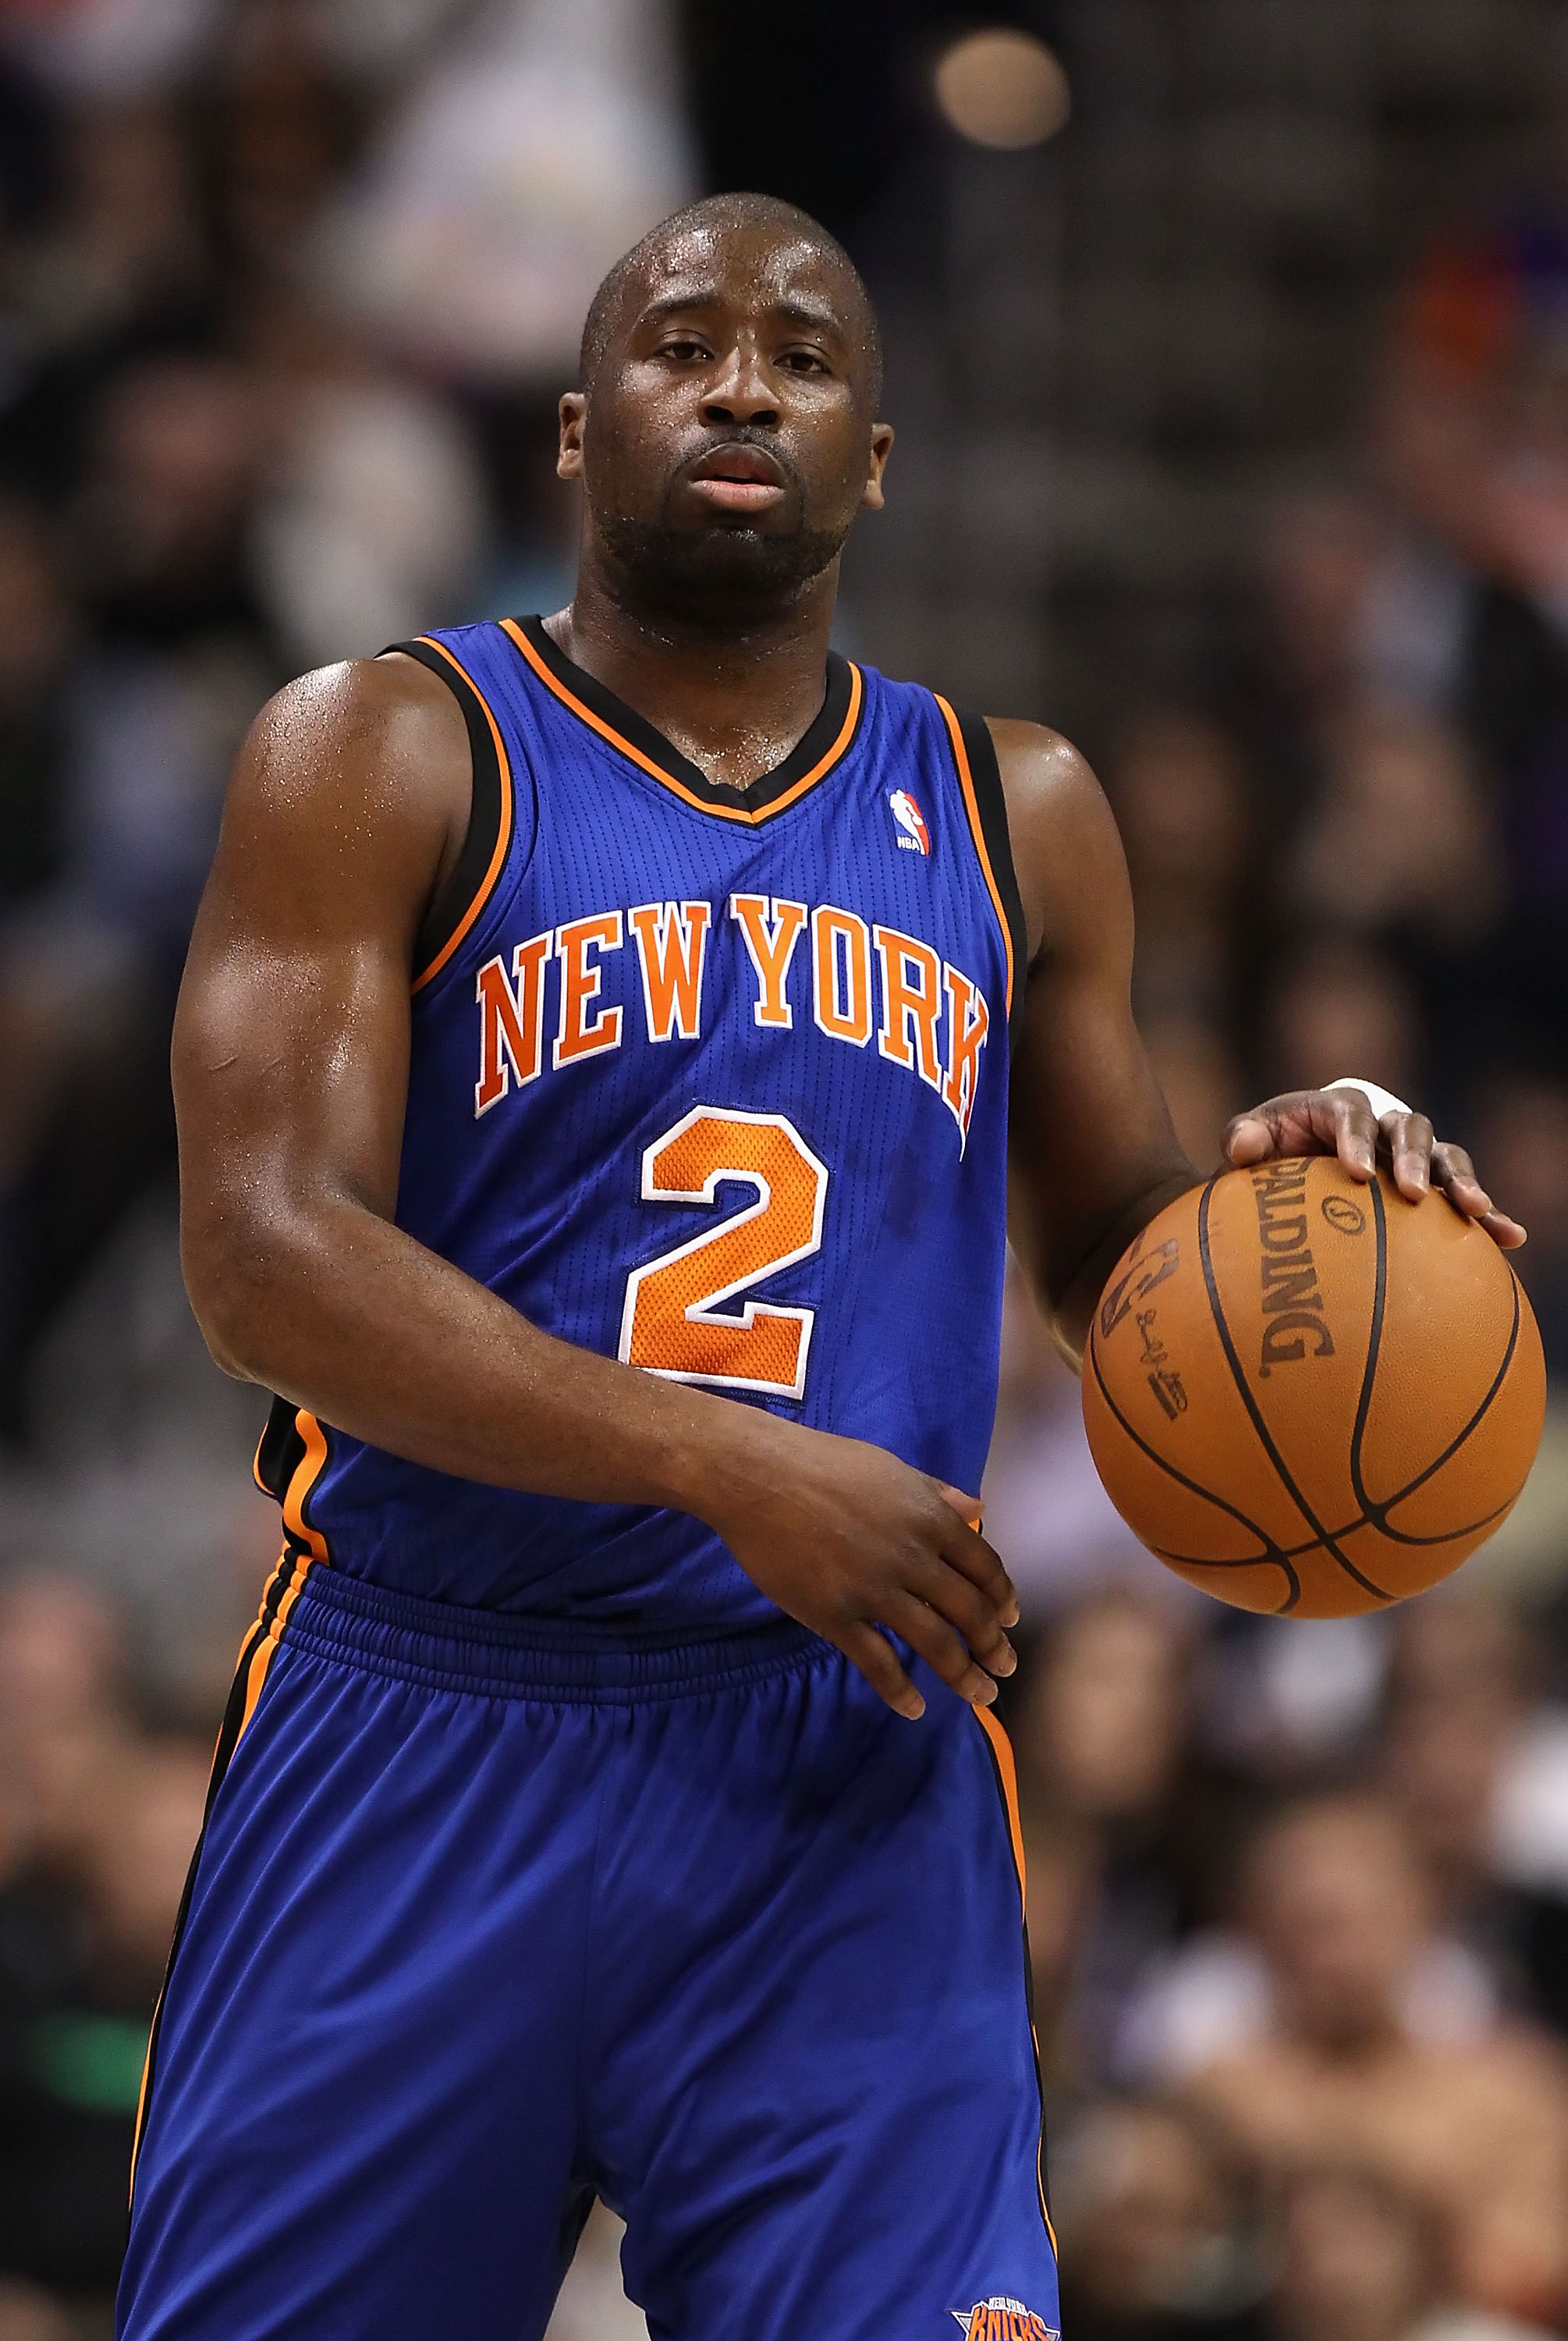 PHOENIX, AZ - JANUARY 07:  Raymond Felton #2 of the New York Knicks during the NBA game against the Phoenix Suns at US Airways Center on January 7, 2011 in Phoenix, Arizona.  NOTE TO USER: User expressly acknowledges and agrees that, by downloading and or